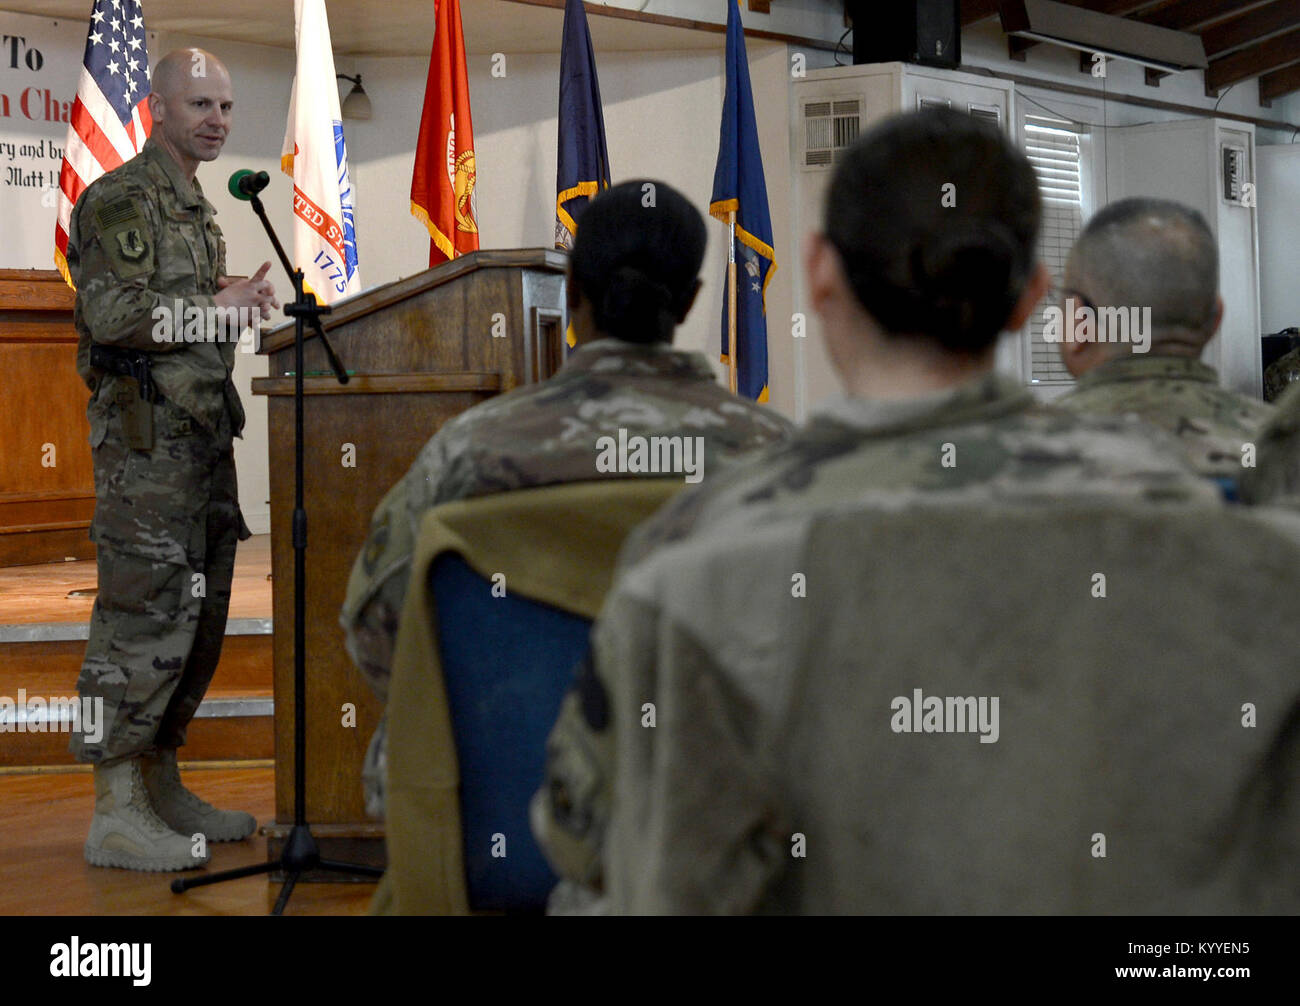 Members of Bagram Airfield gathered at the Enduring Faith to celebrate Martin Luther King Day Jan. 15, 2018 at Bagram - Stock Image